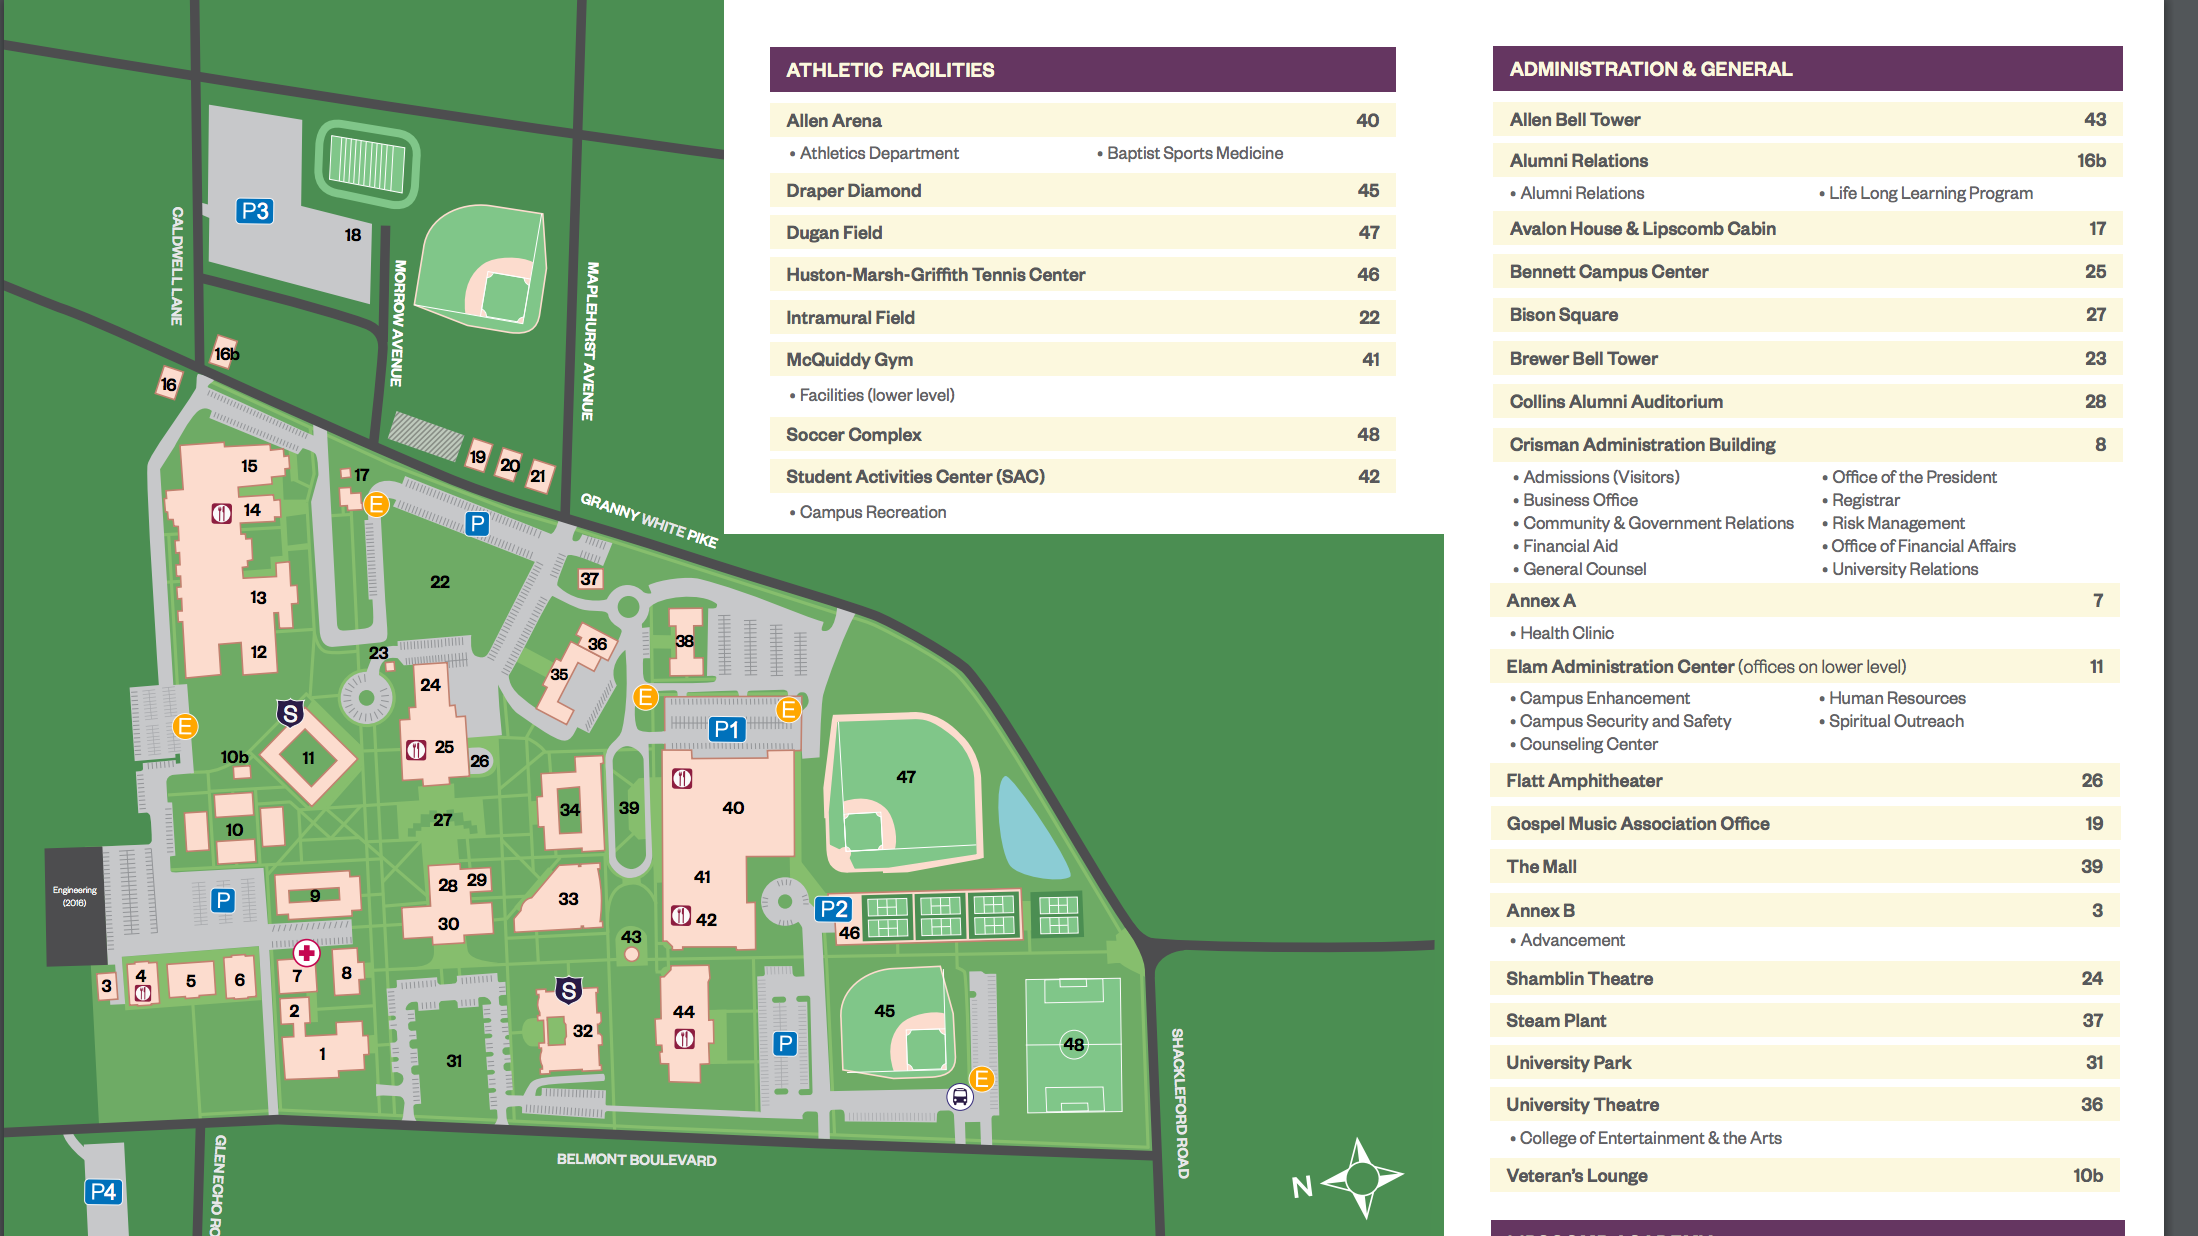 lipscomb university campus map Lipscomb University Map Icon 2019 lipscomb university campus map